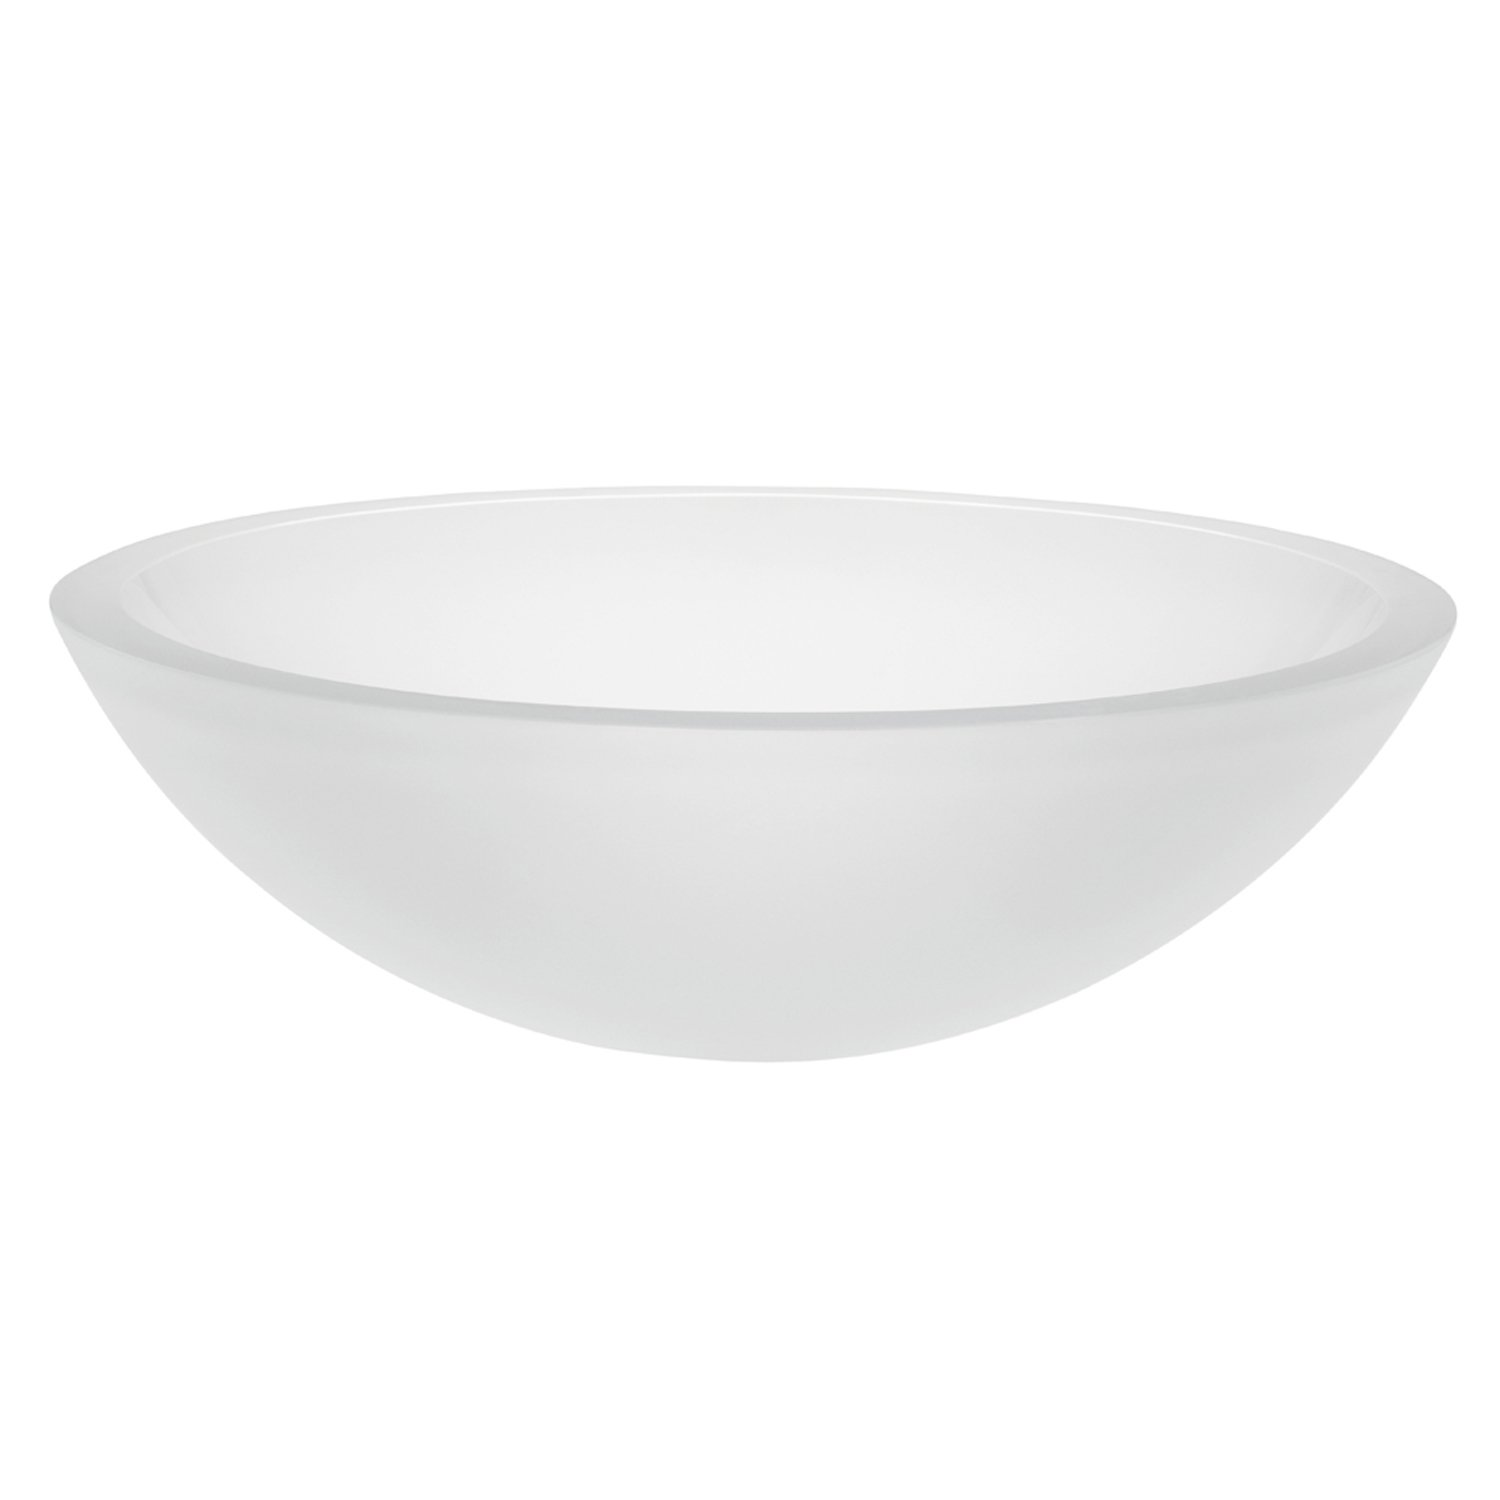 DECOLAV 1019T-FCR Anani Translucence Round 19mm Tempered Glass Vessel Sink, Frosted Crystal